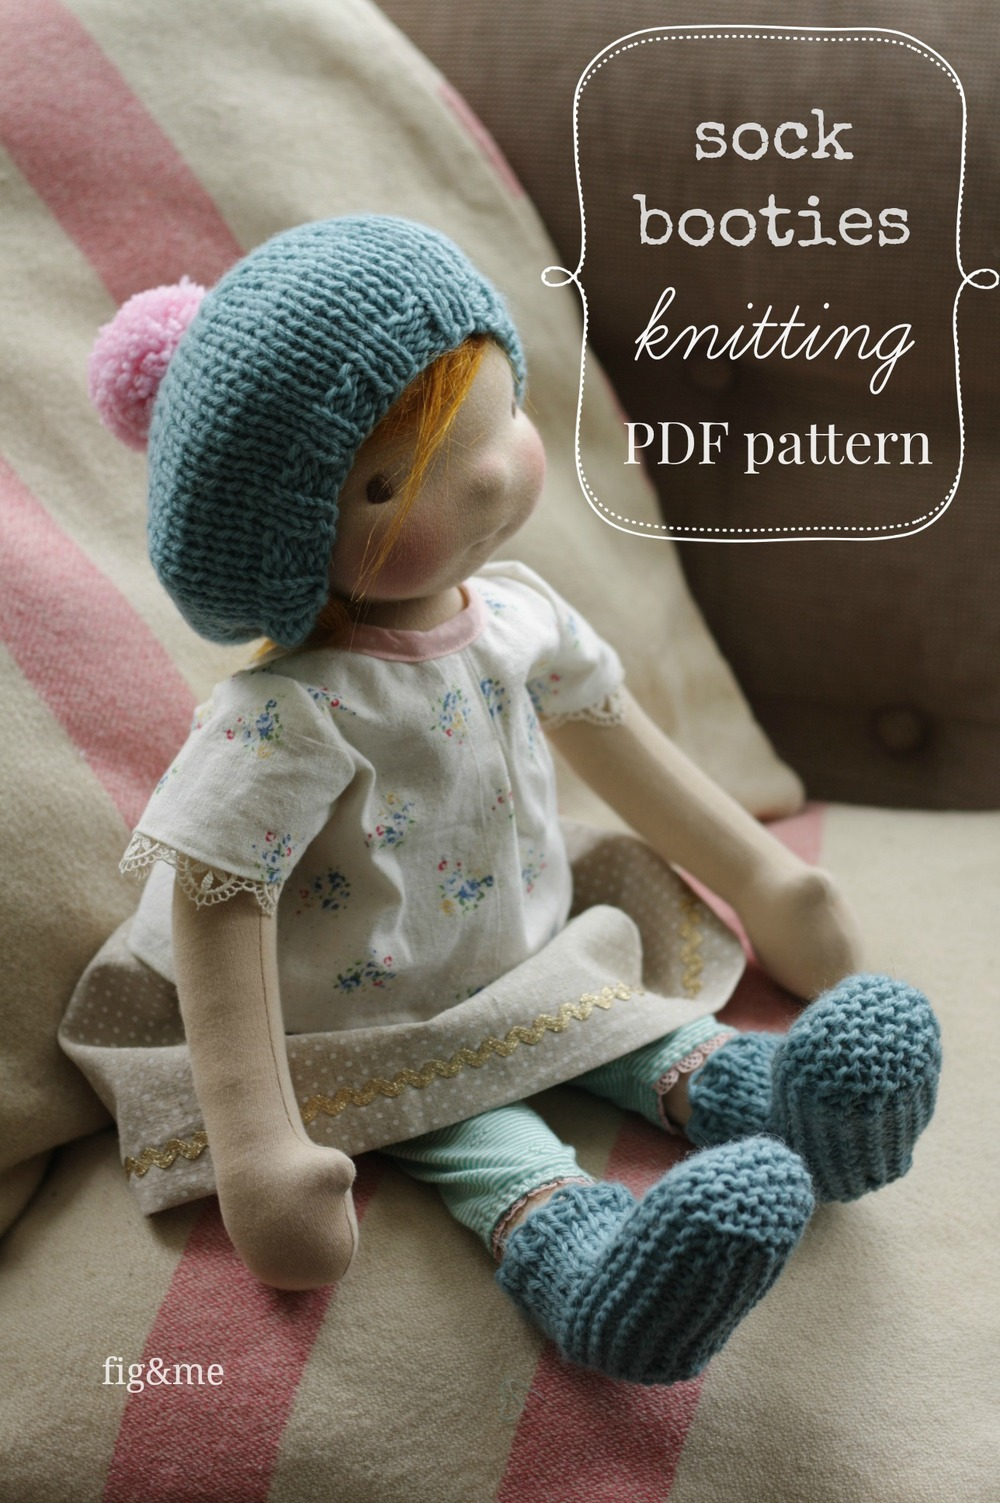 Knitting Pattern Doll Booties : A new pattern for cozy feet, sock booties.   fig & me